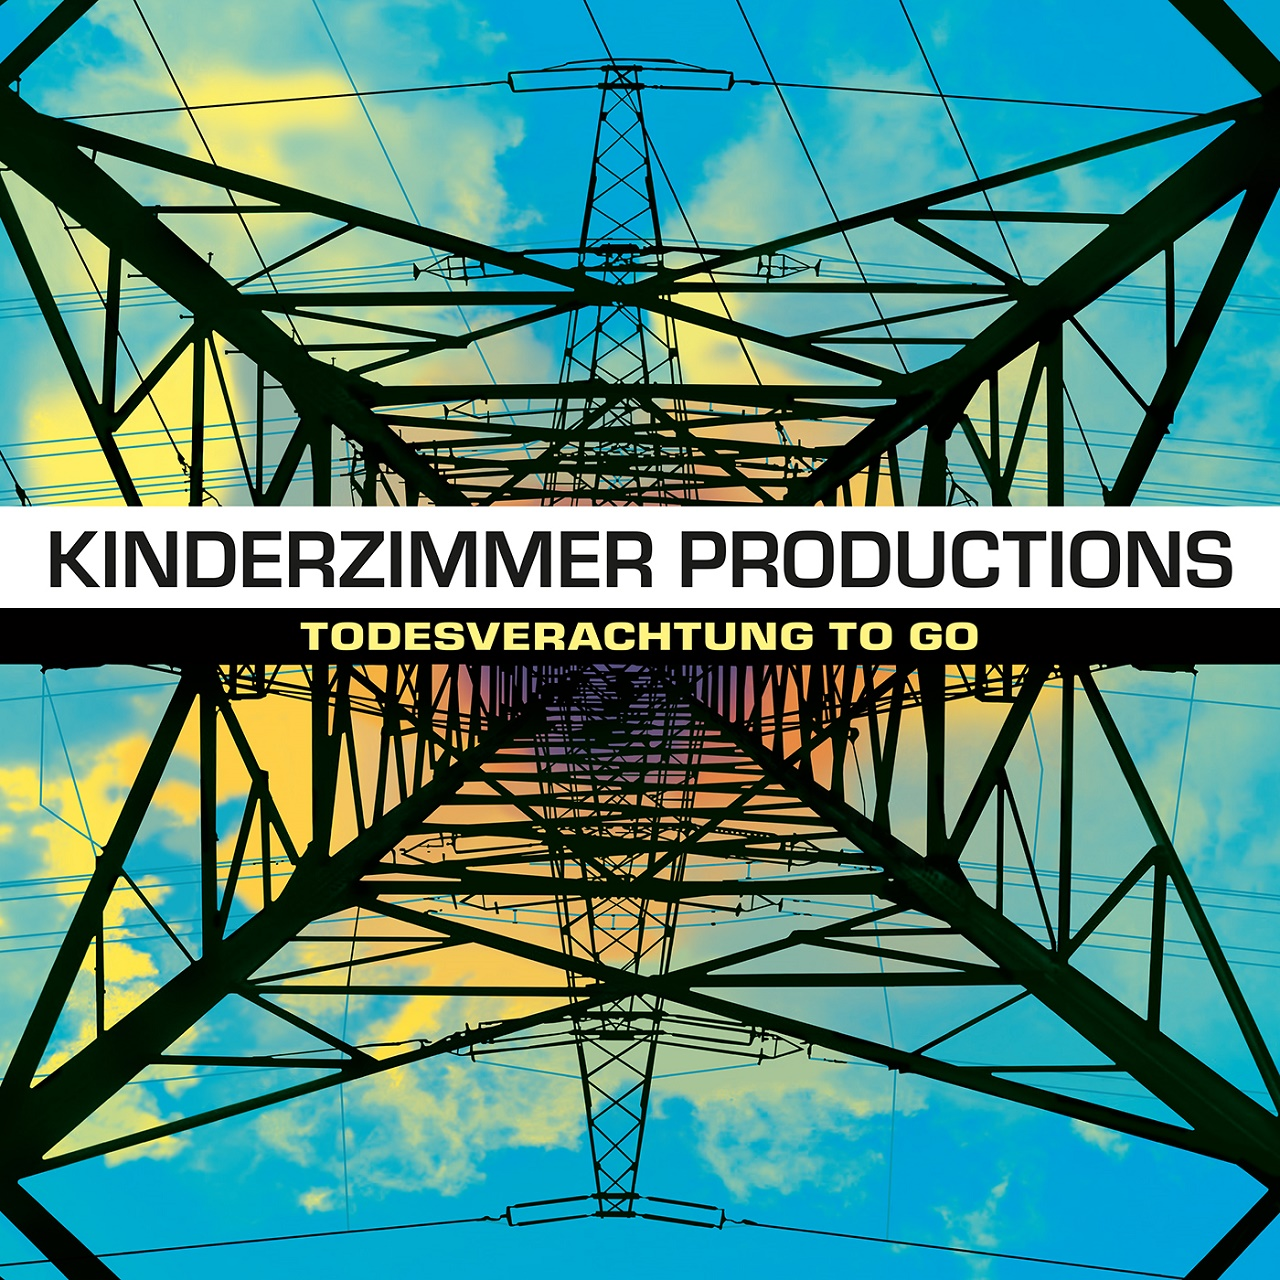 Kinderzimmer Productions machen wieder Wellen fm4.ORF.at